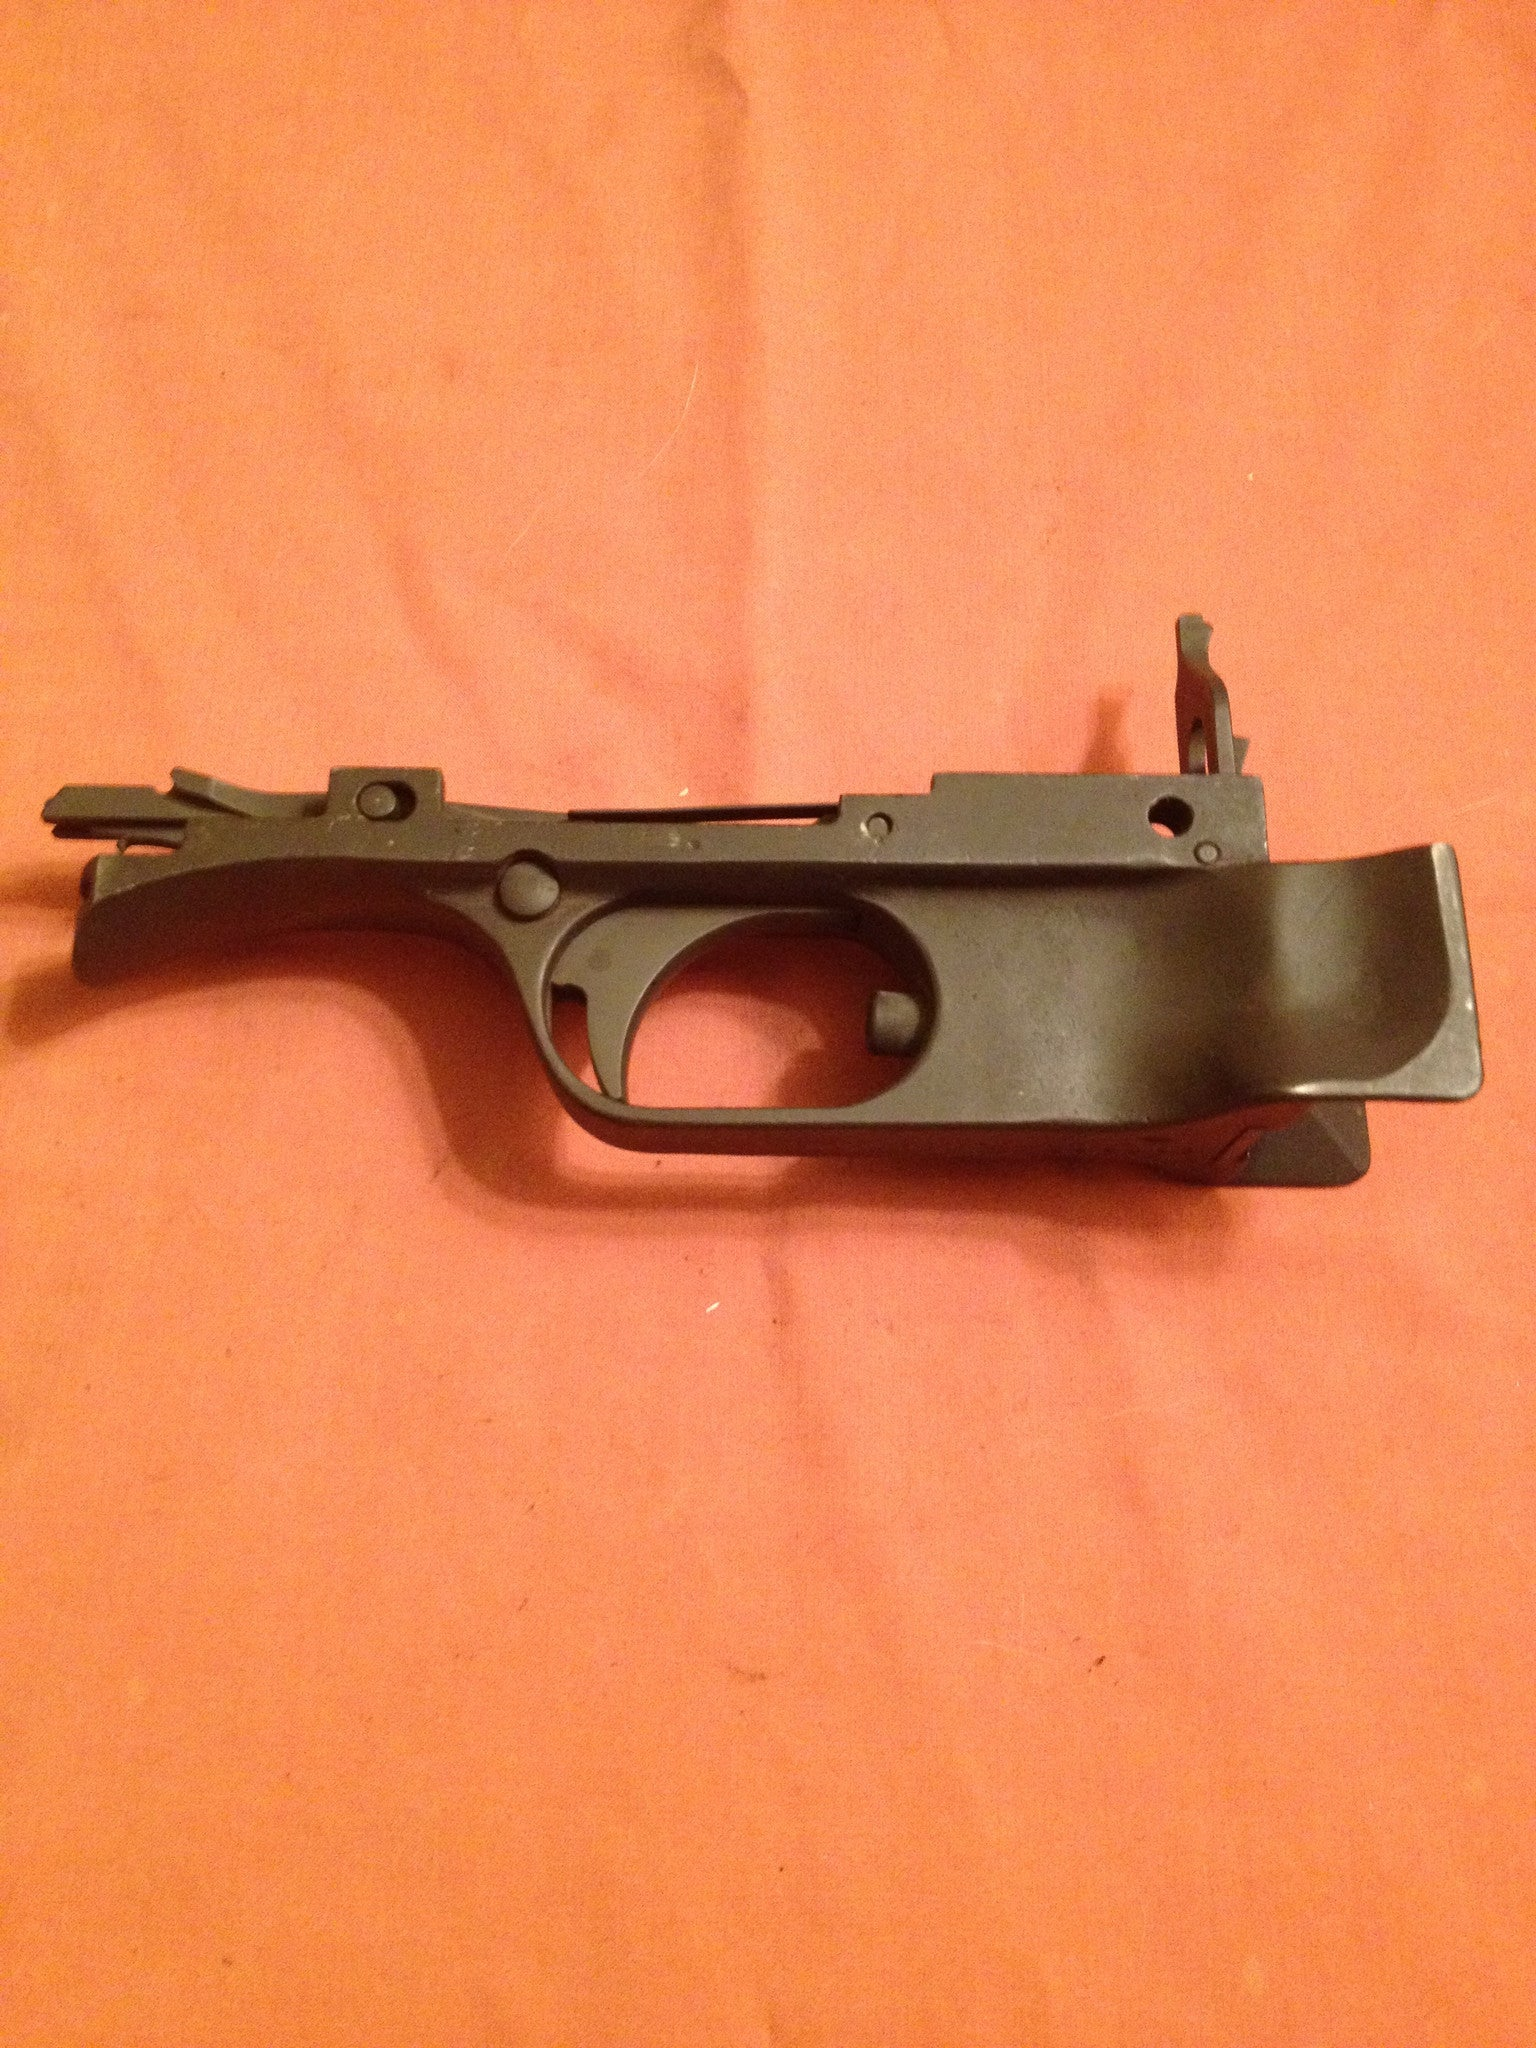 M1918a2 trigger group, complete